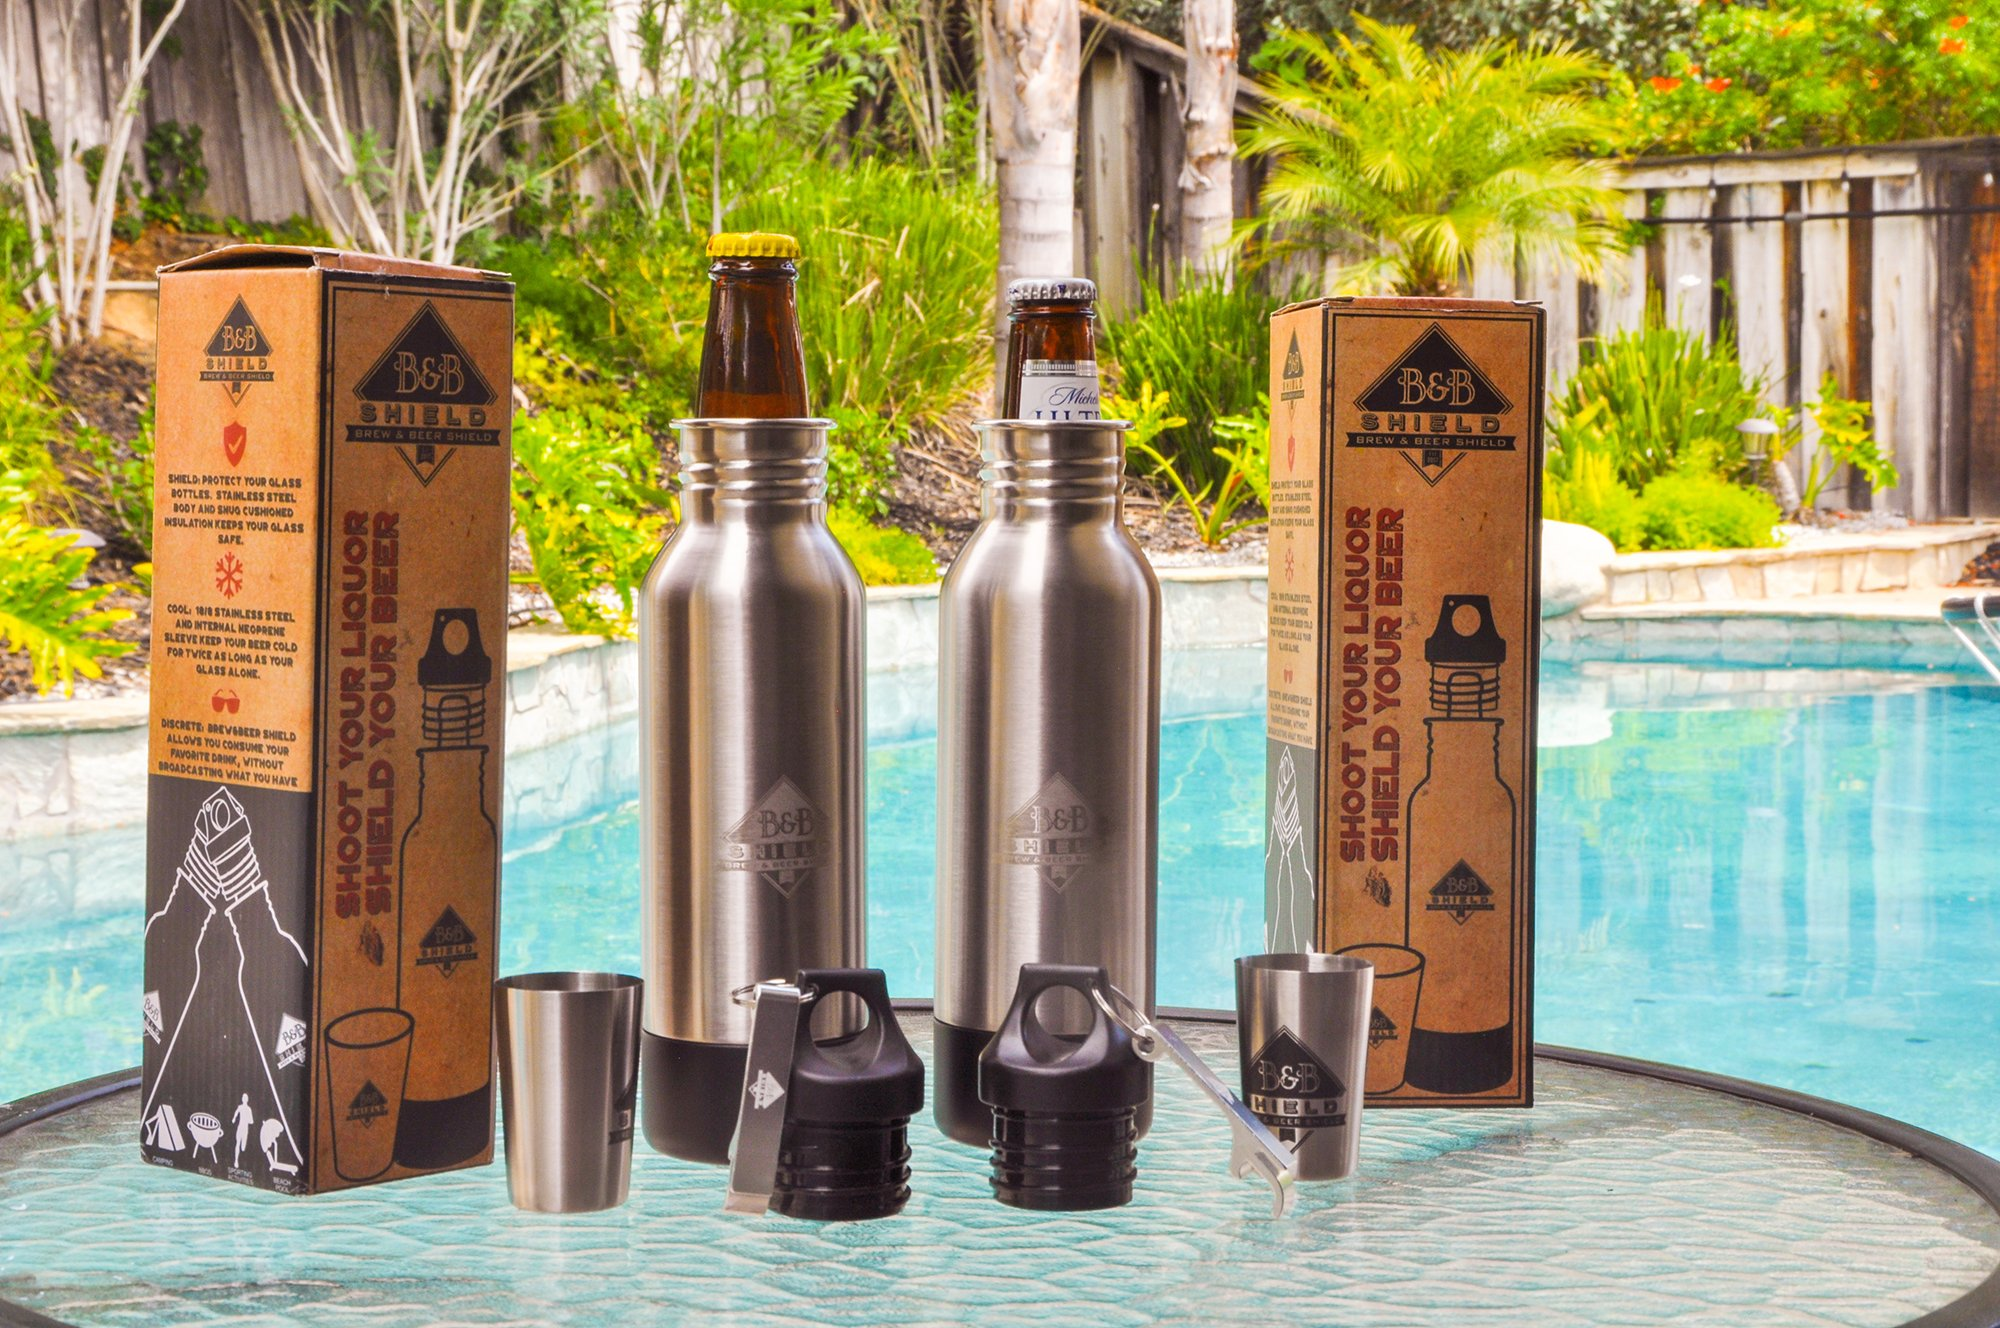 Brew & Beer Shield: Stainless Steel Beer Insulator Protect Conceal 12 ounce glass bottles. Ideal beer lover gift. Perfect for Pool Spa Beach Tailgating Beer Bottle Holder Keeper